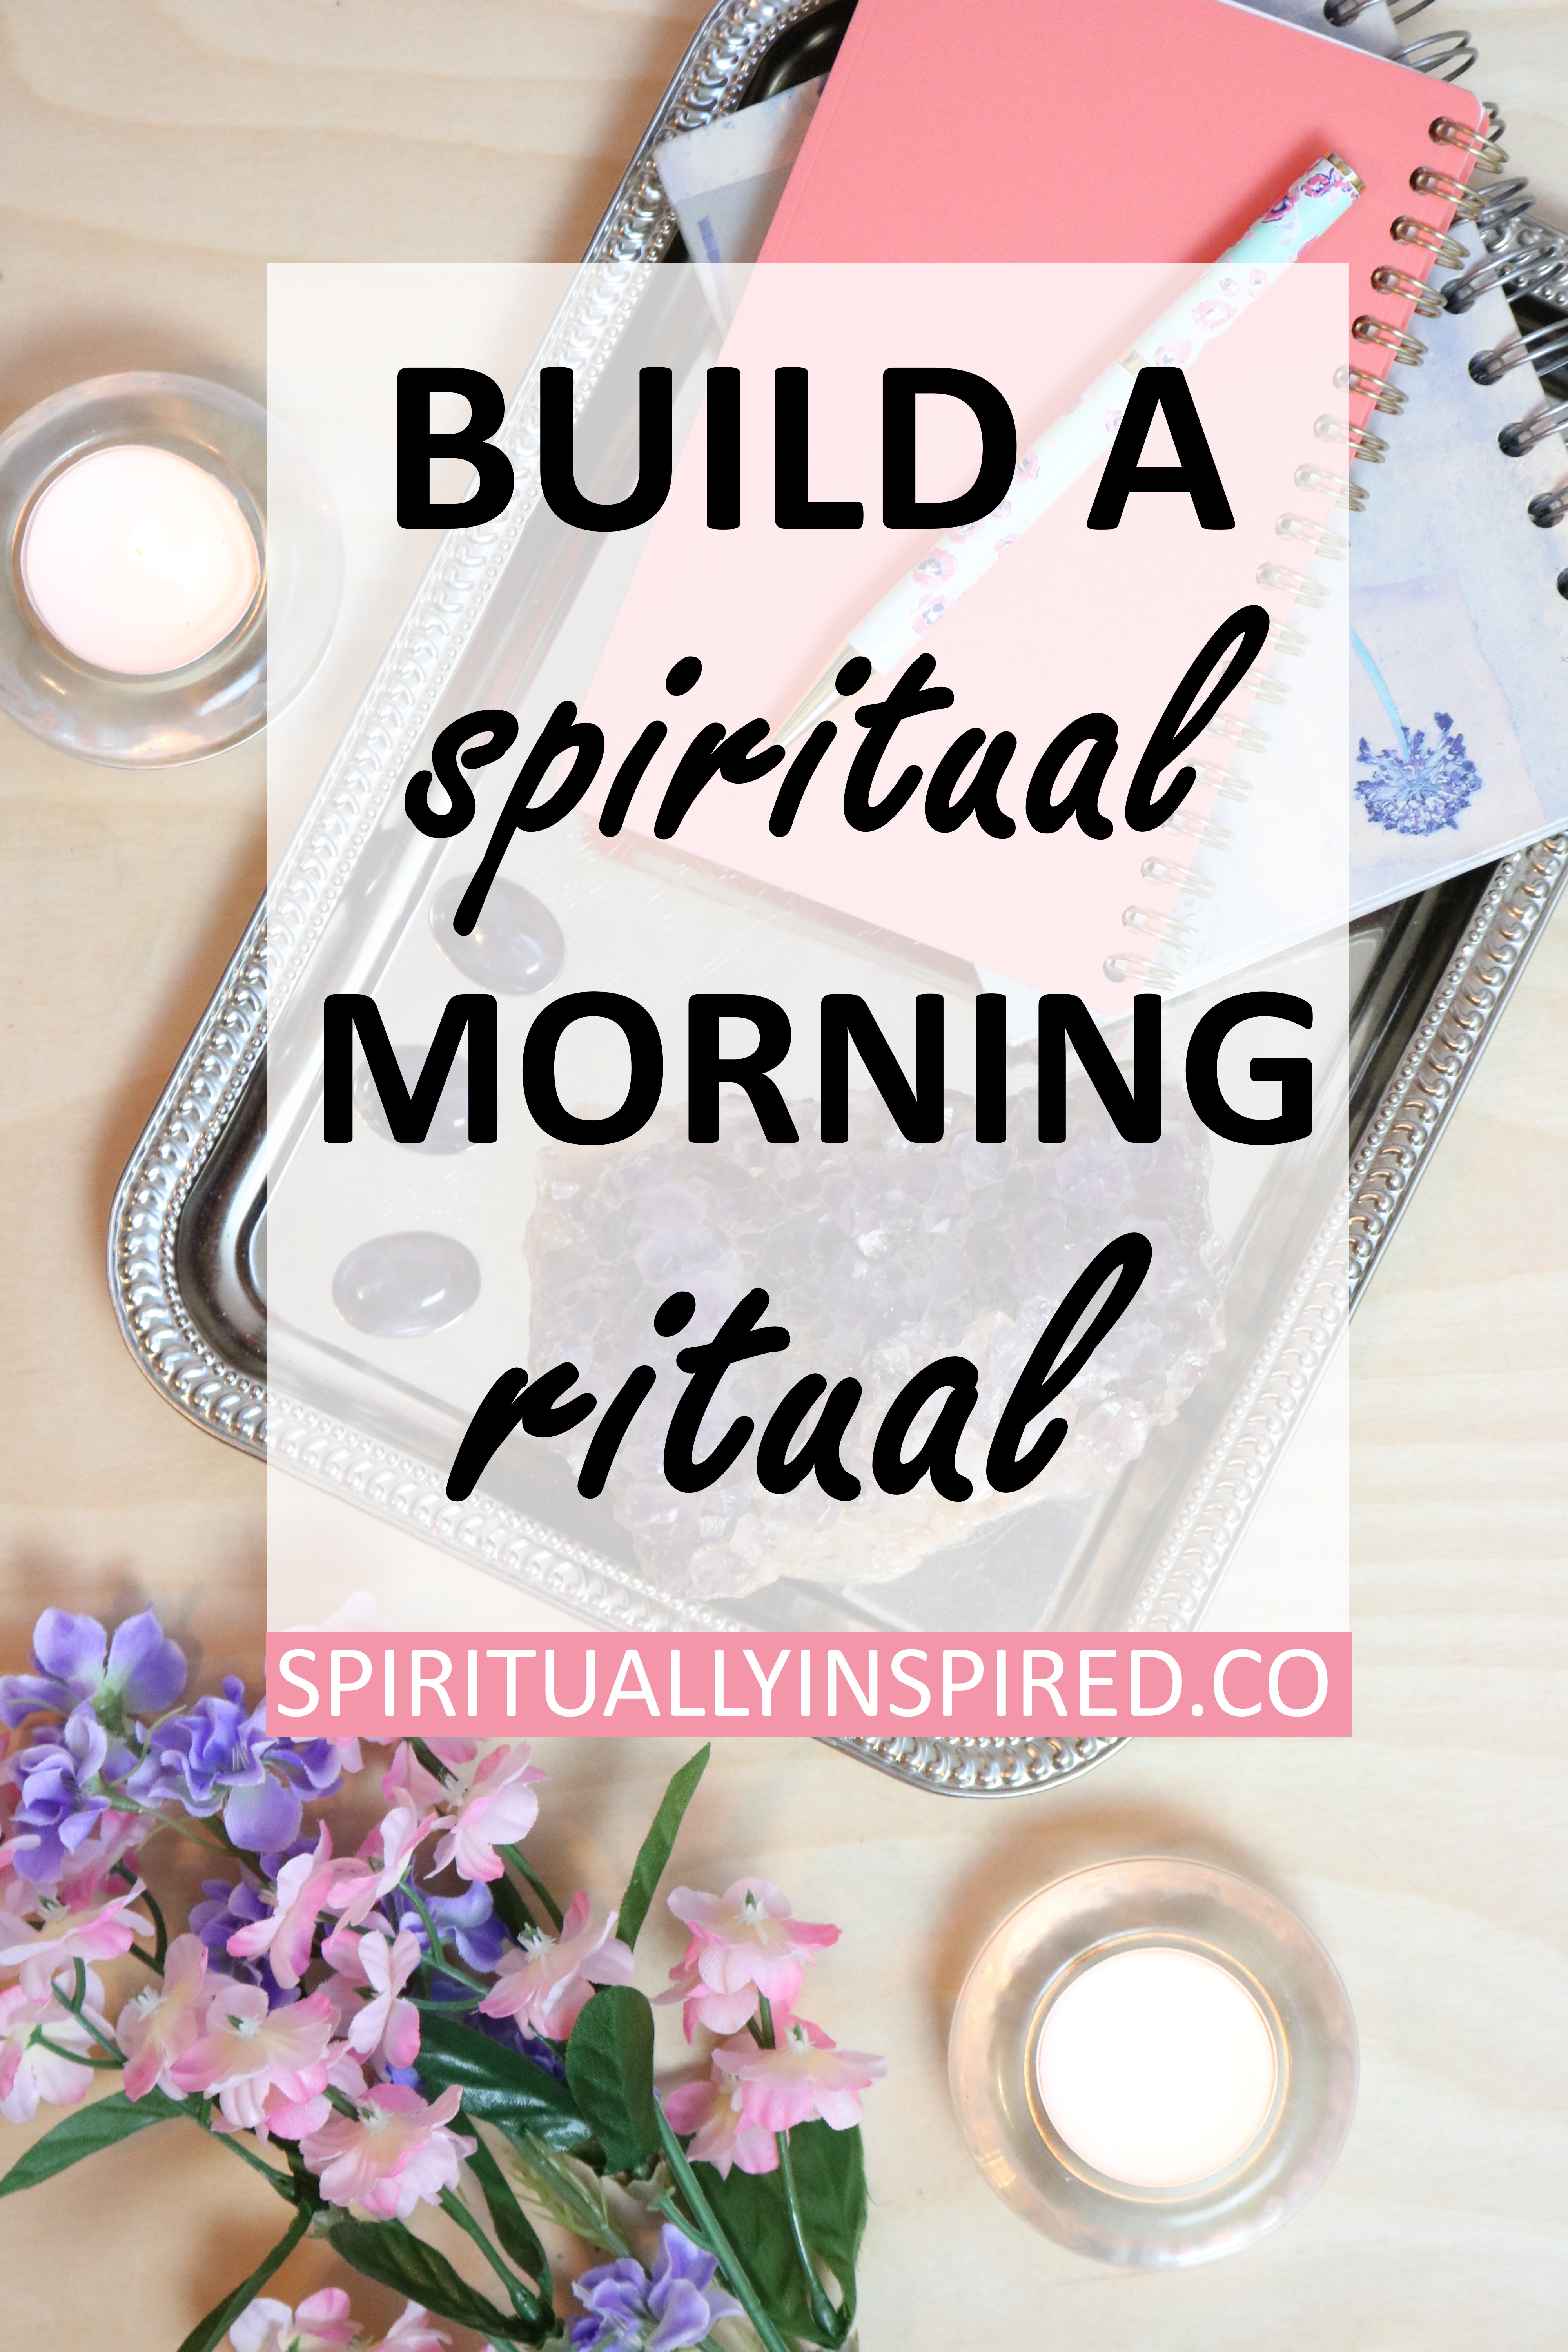 Time to cultivate a spiritual morning ritual! There's no need to follow the EXACT same routine every single morning--just do what feels right in the moment.